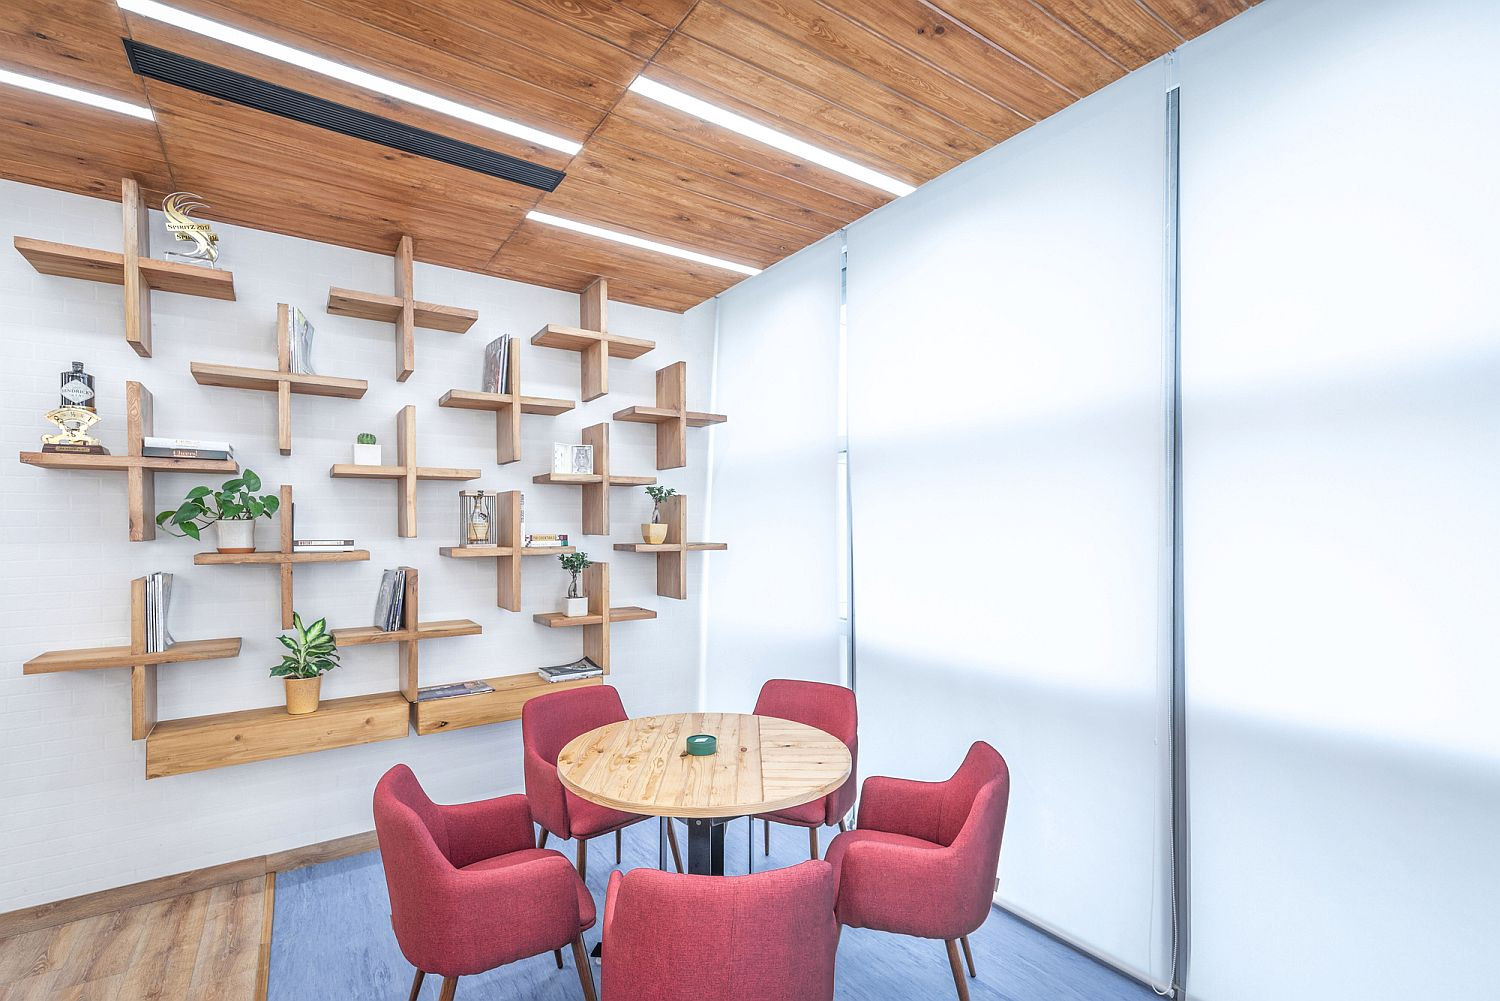 Cool conversation areas are coupled with cafe style seating inside the Ideation Space